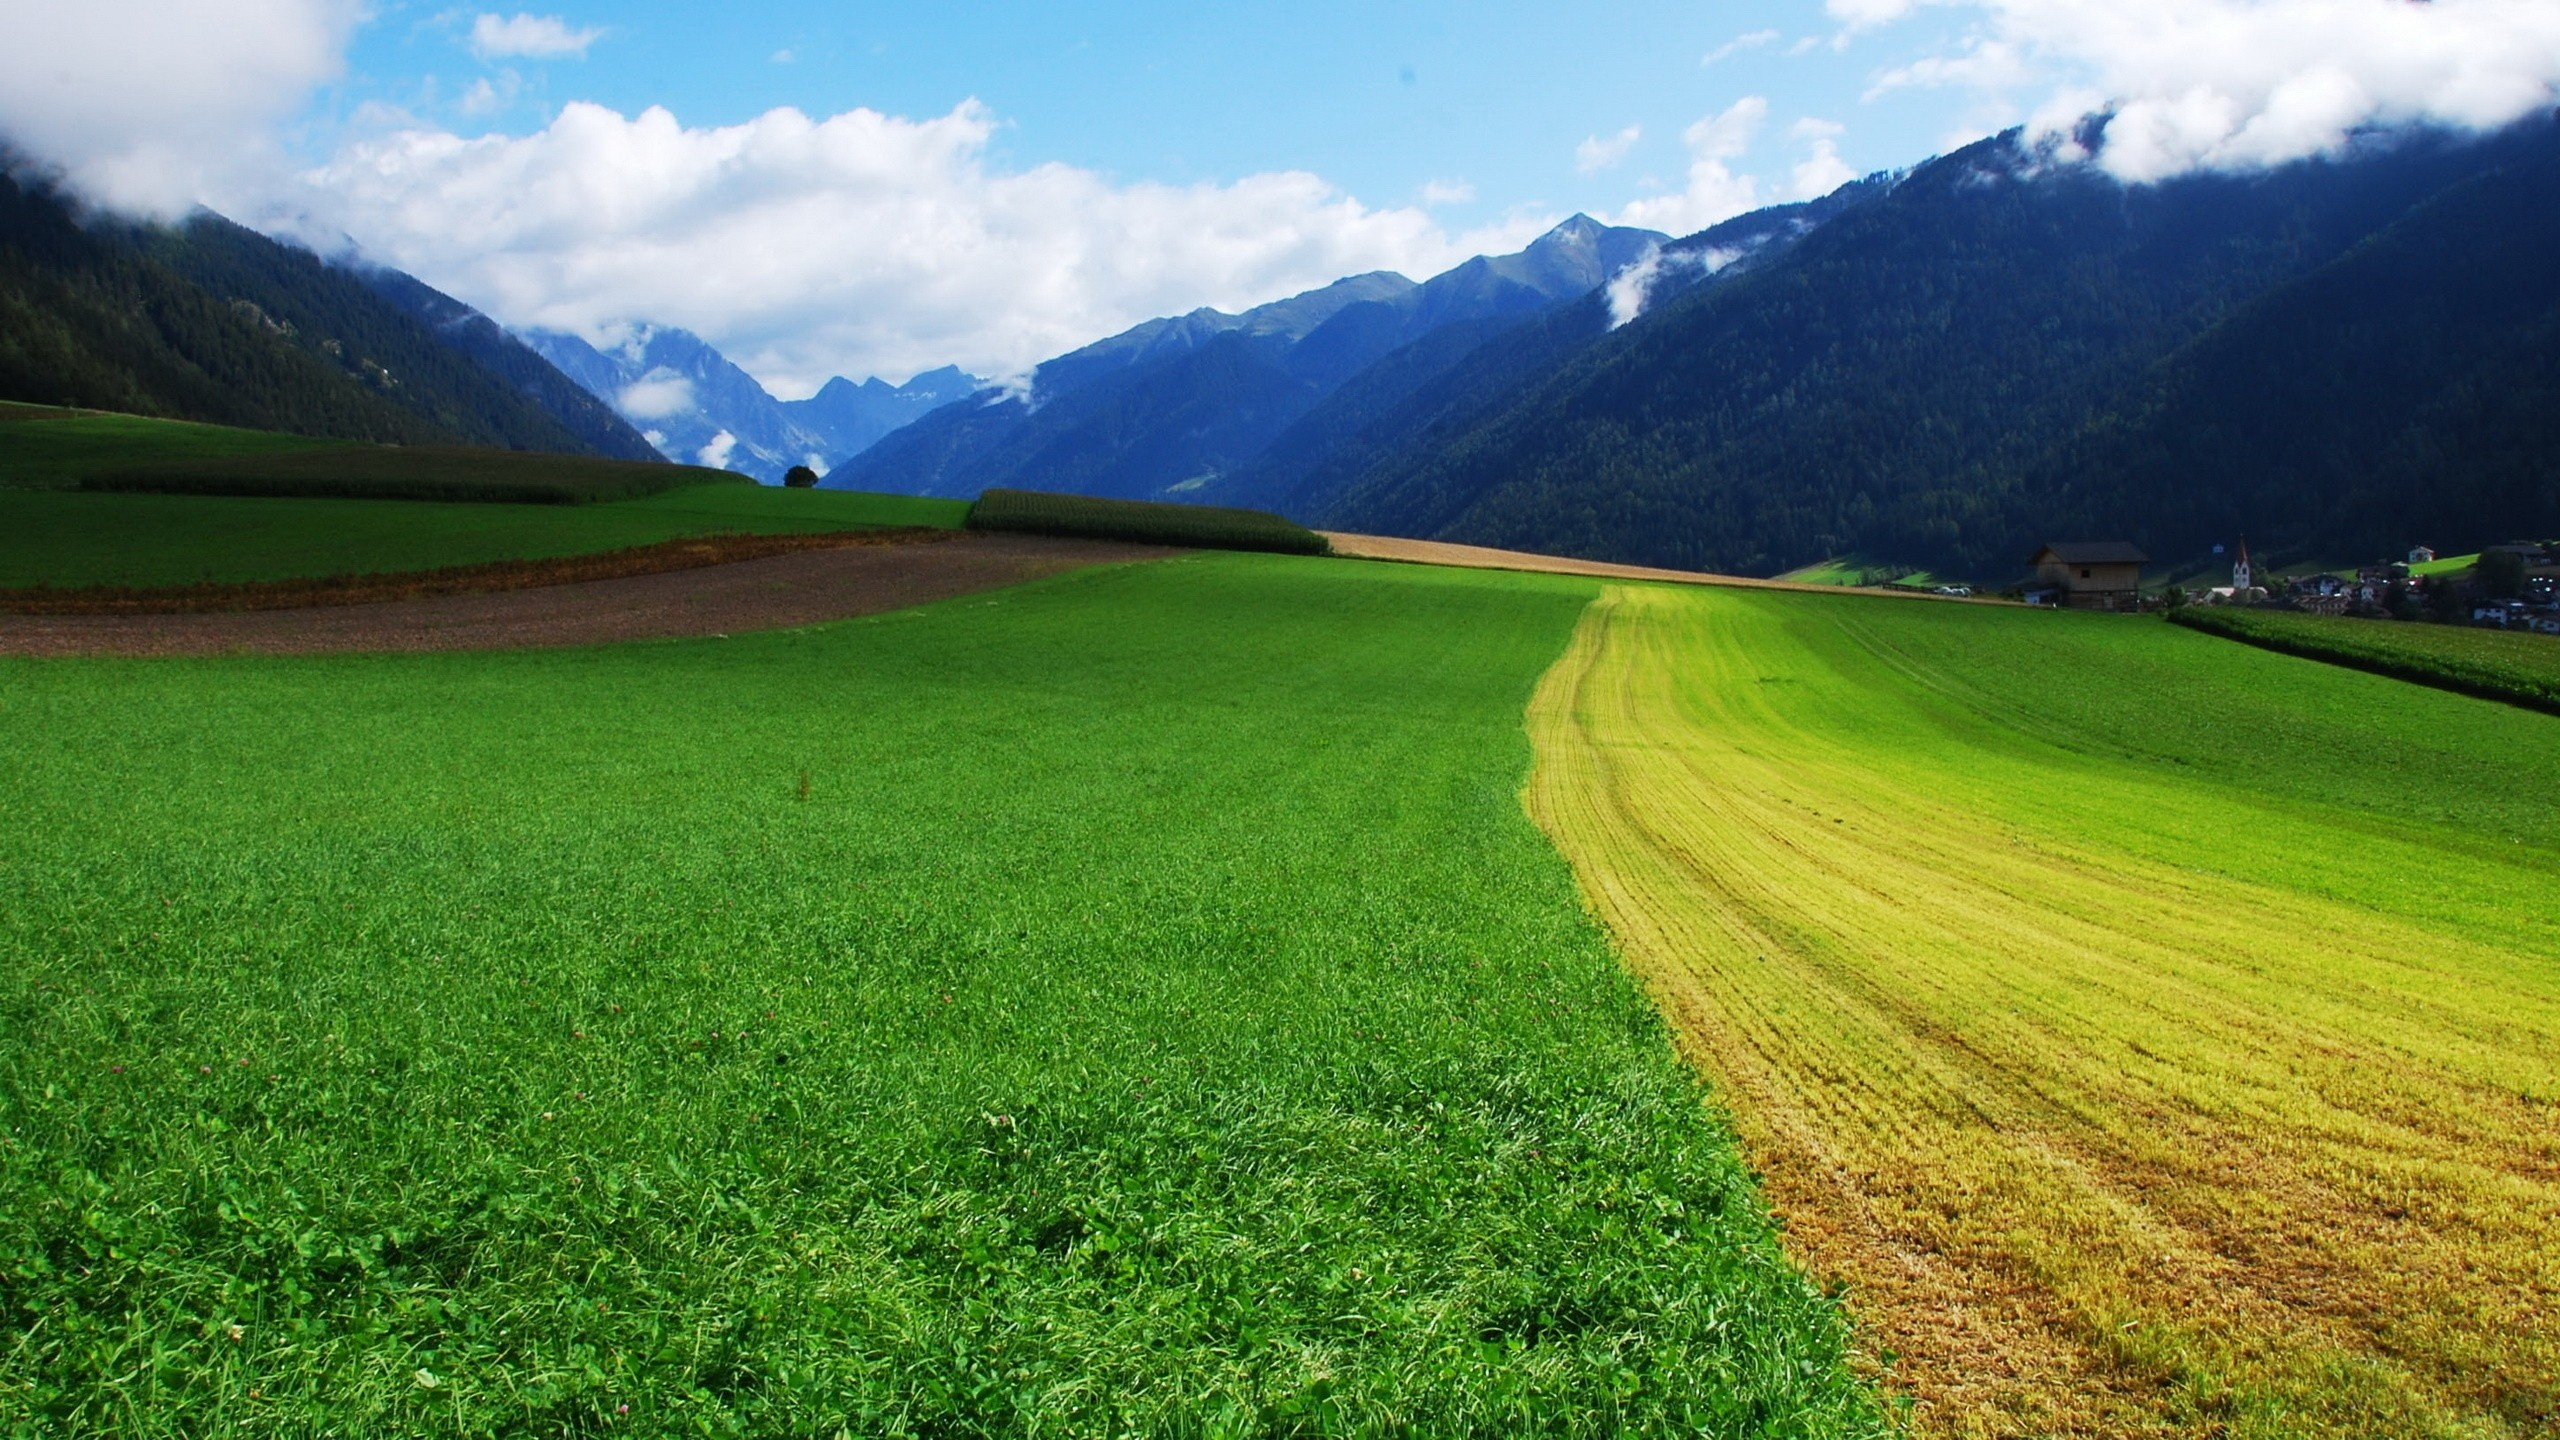 Green Fields Between the Mountains